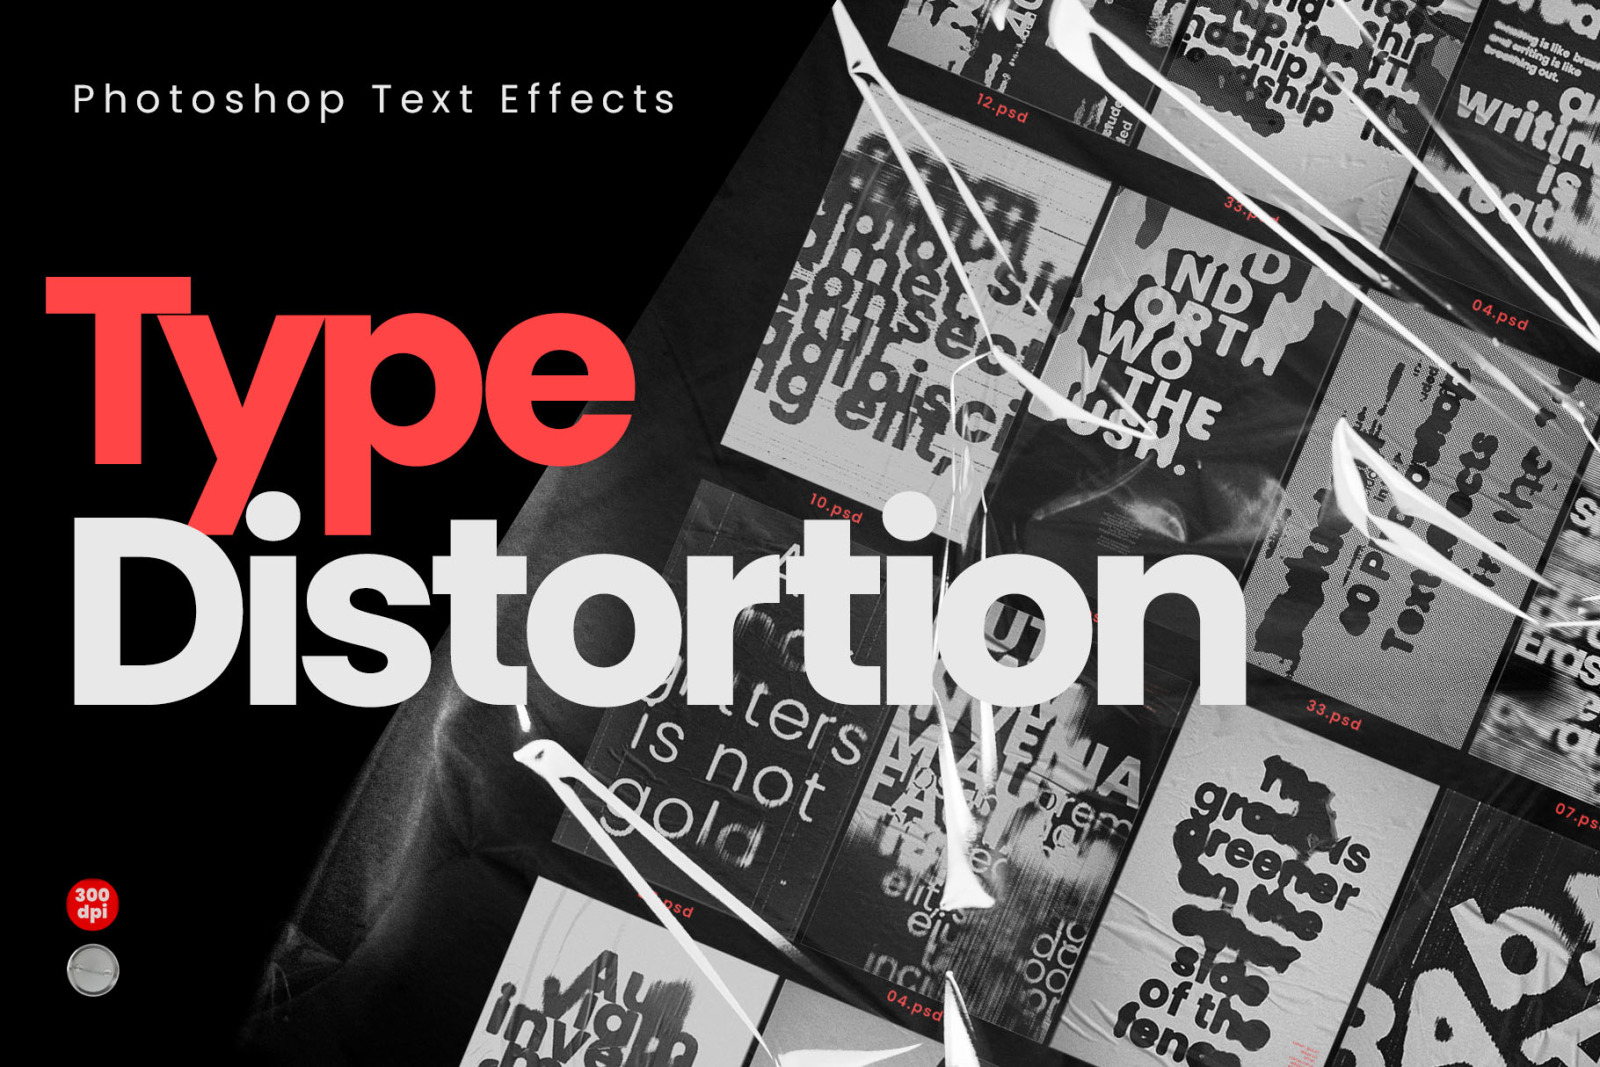 40 x Photoshop Text Effects